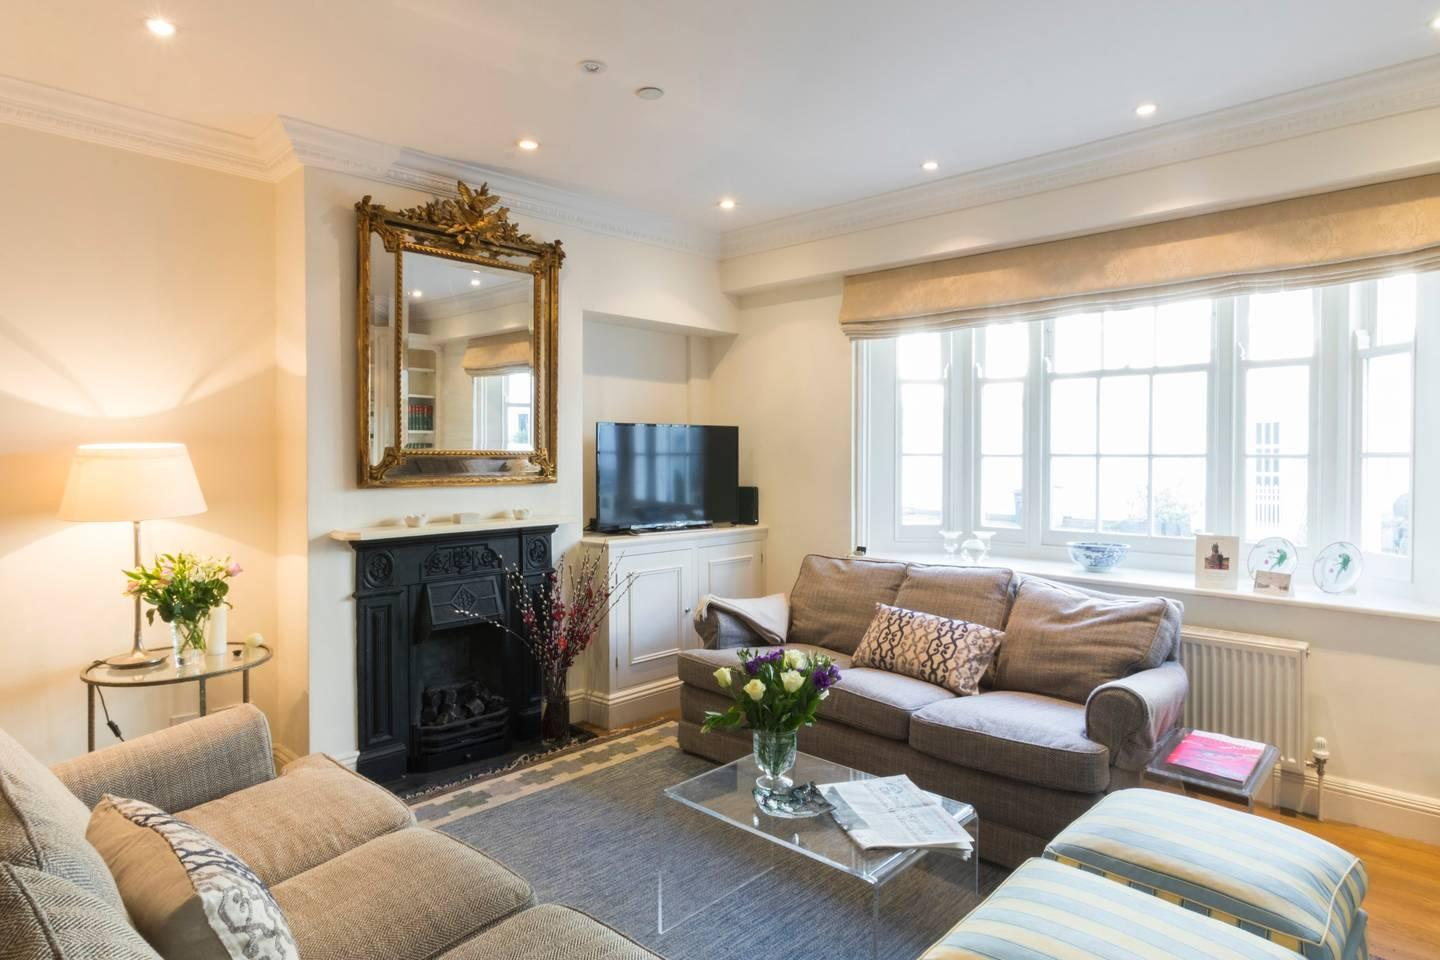 Property Image 1 - Welcoming Home with Warm Furnishings